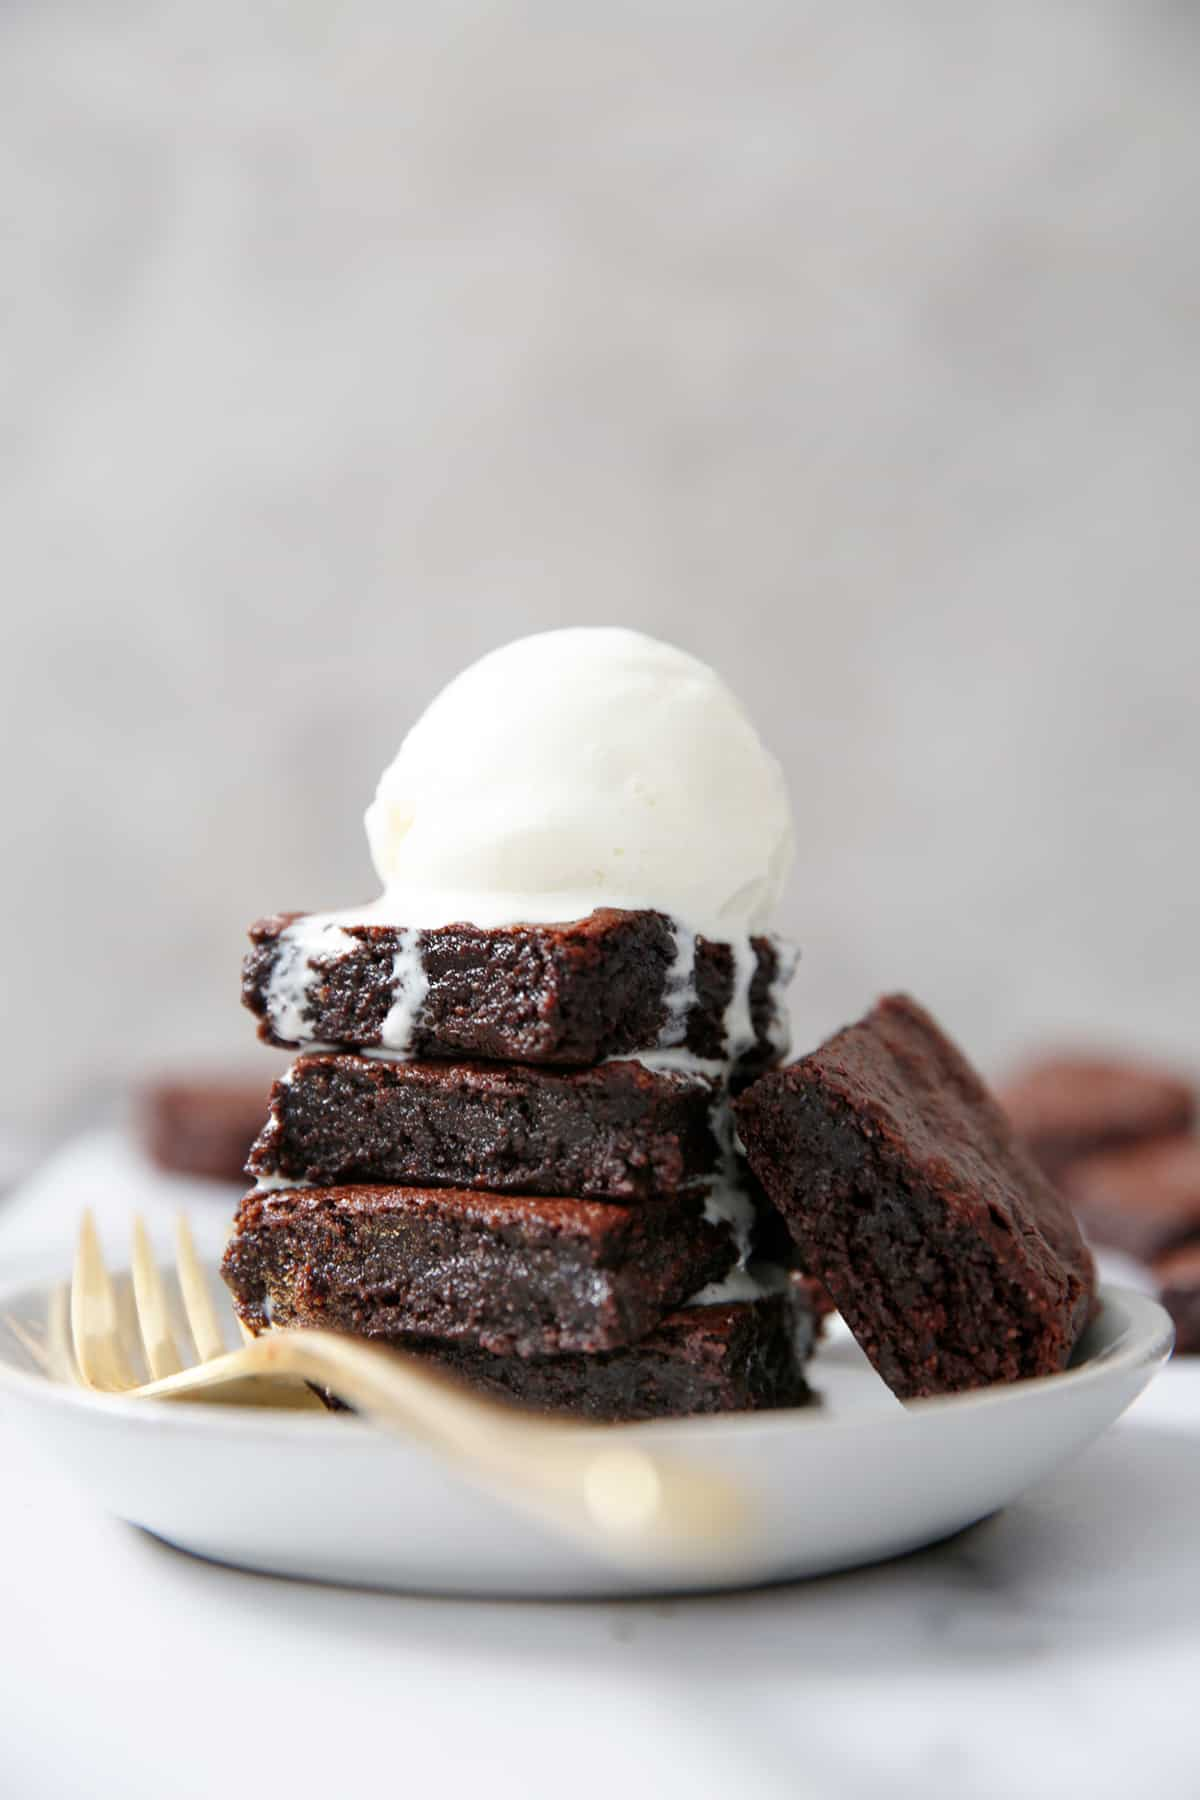 Gluten free and dairy free brownies stacked up with dripping ice cream on them